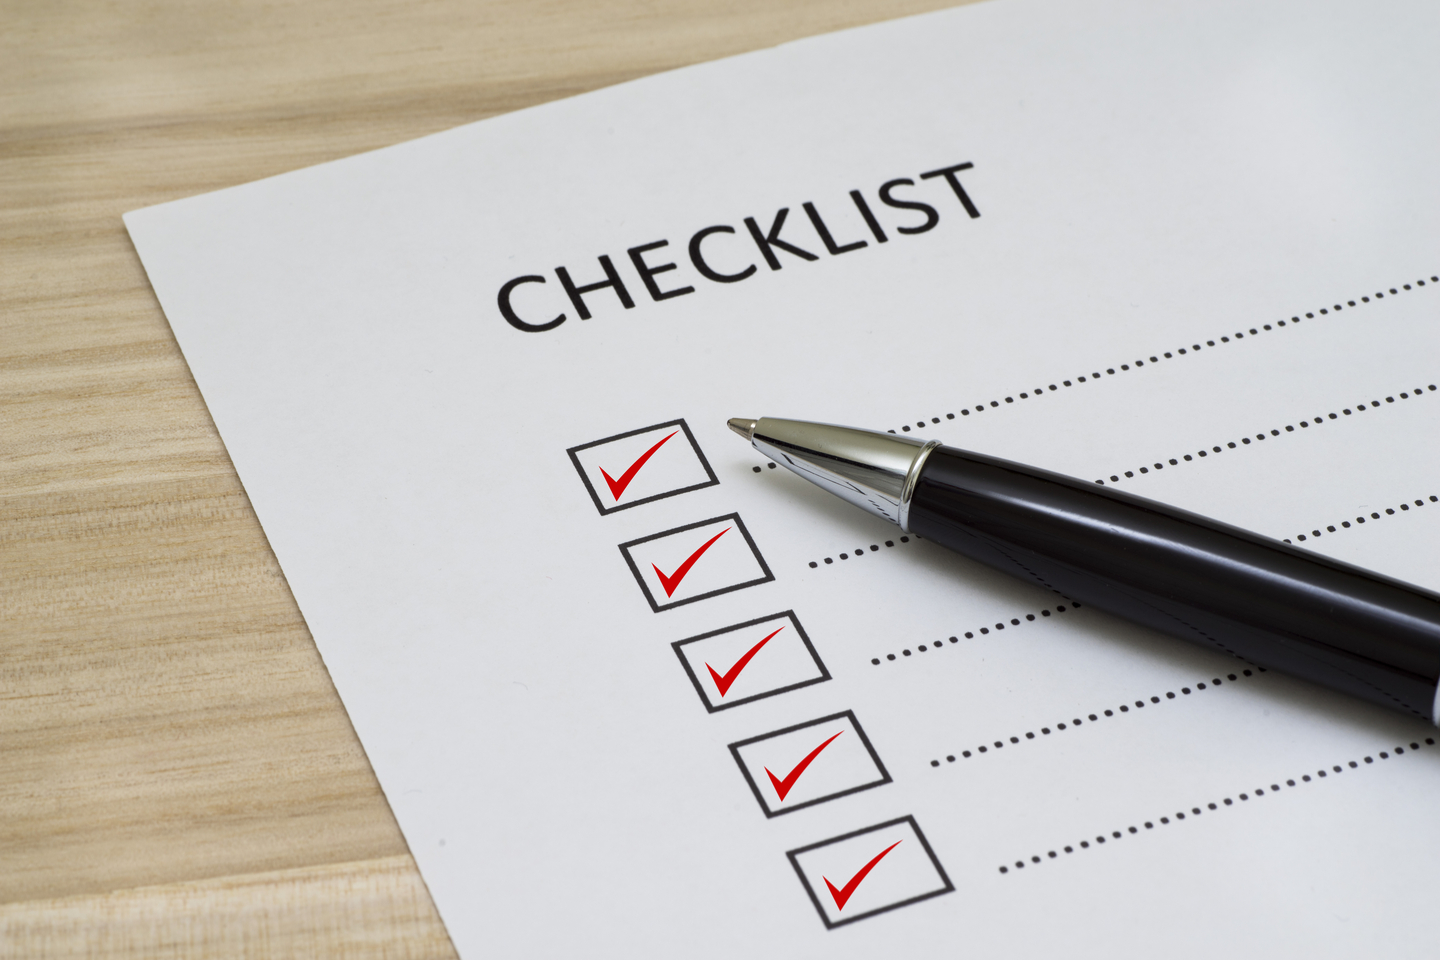 Do you have a go live checklist for your website?